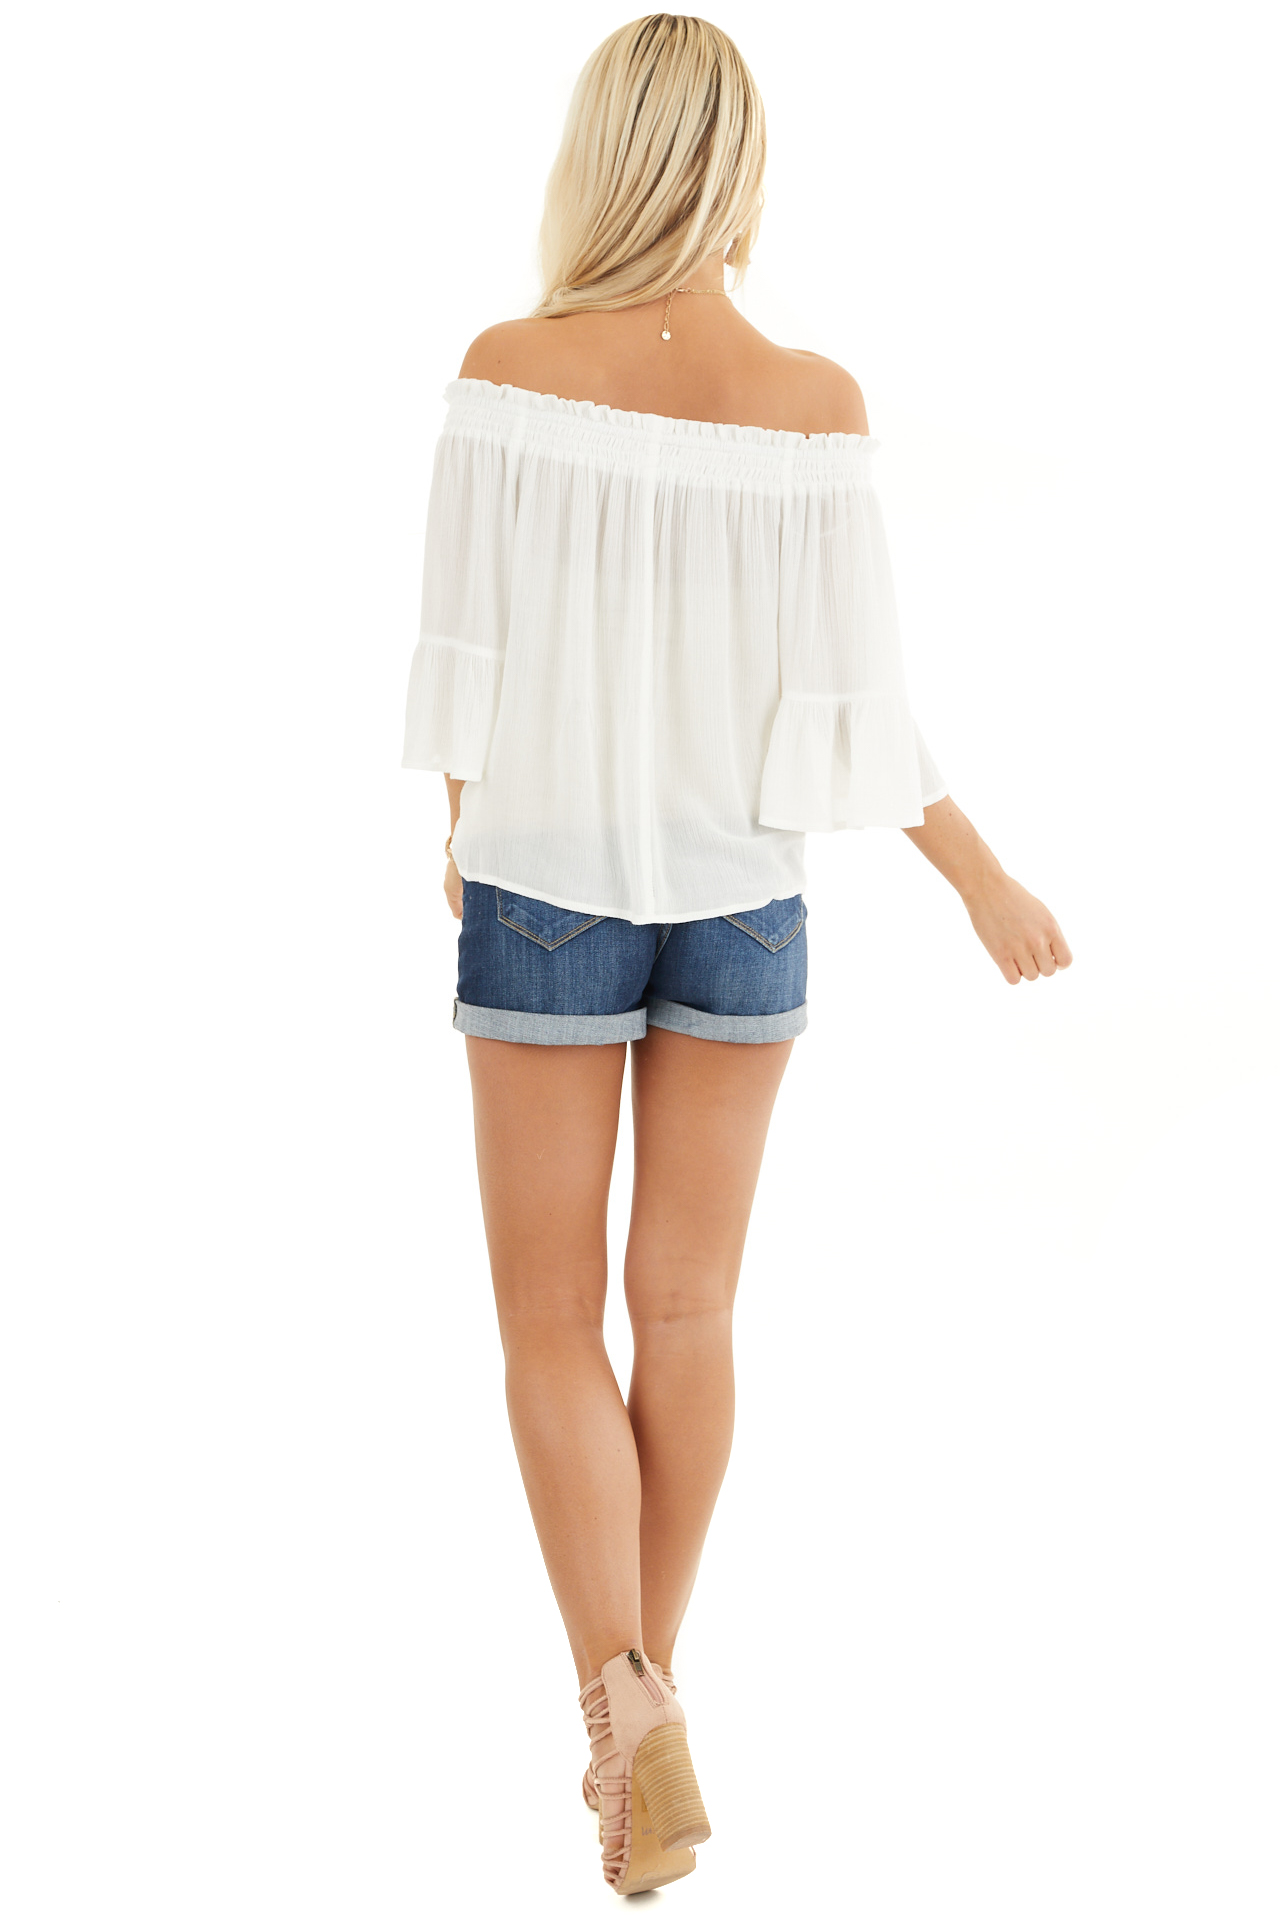 White Off the Shoulder Top with 3/4 Length Sleeves back full body